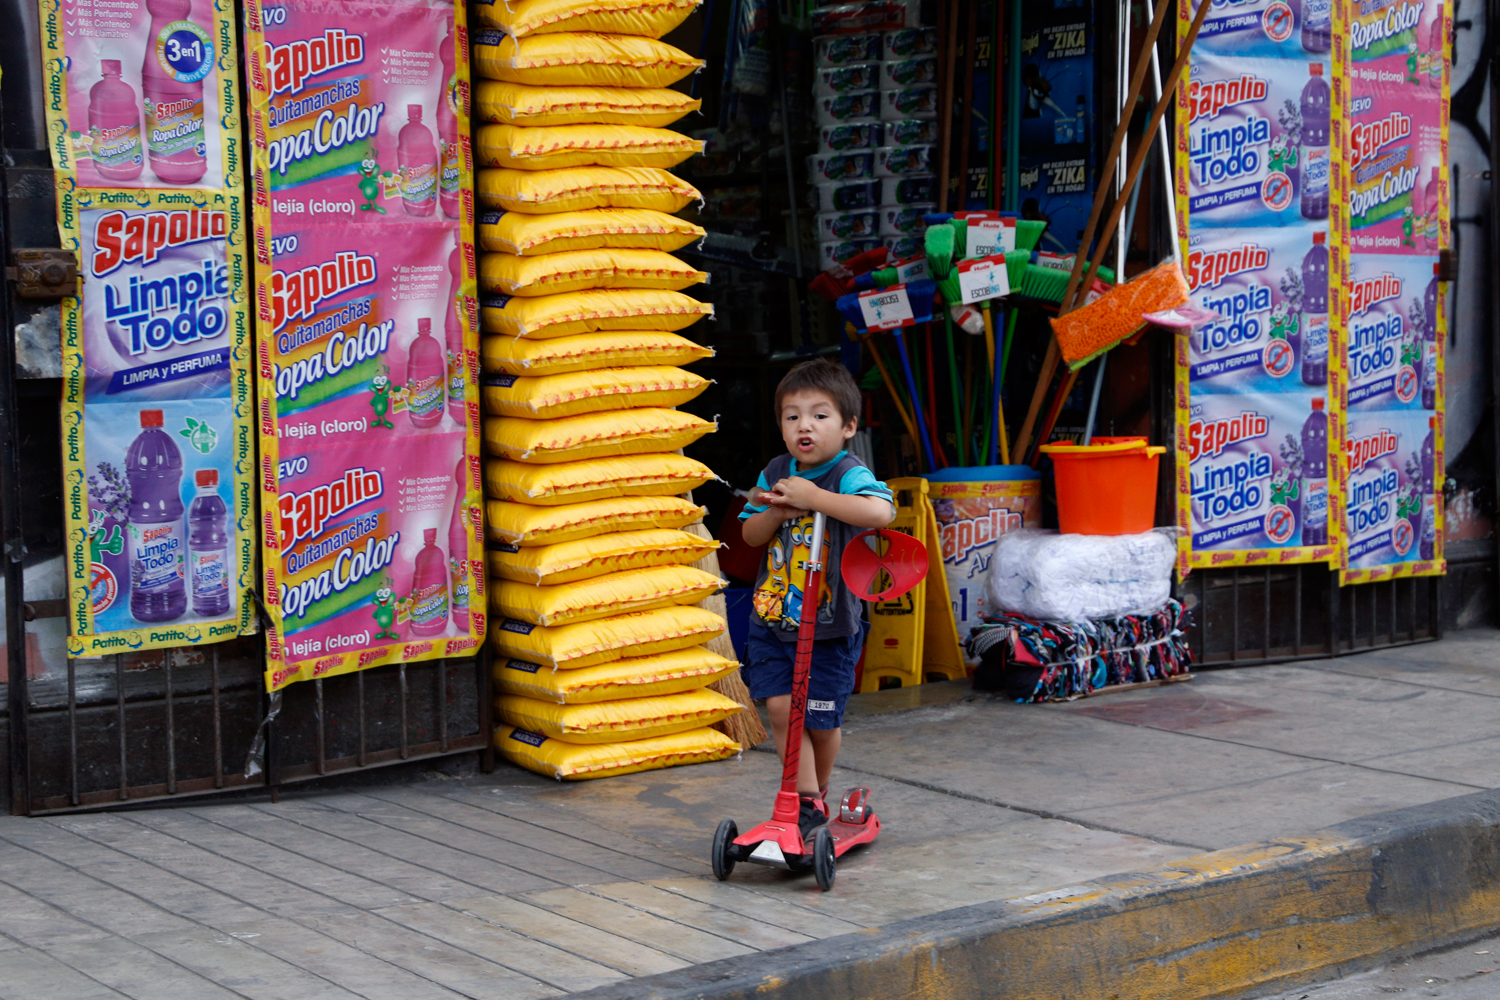 A young boy is riding his red scooter along the pavement in front of a shop that sells cleaning supplies. His shirt features two Minions from the Despicable Me movie franchise and a Spider Man mask is dangling from the handlebar of his scooter.